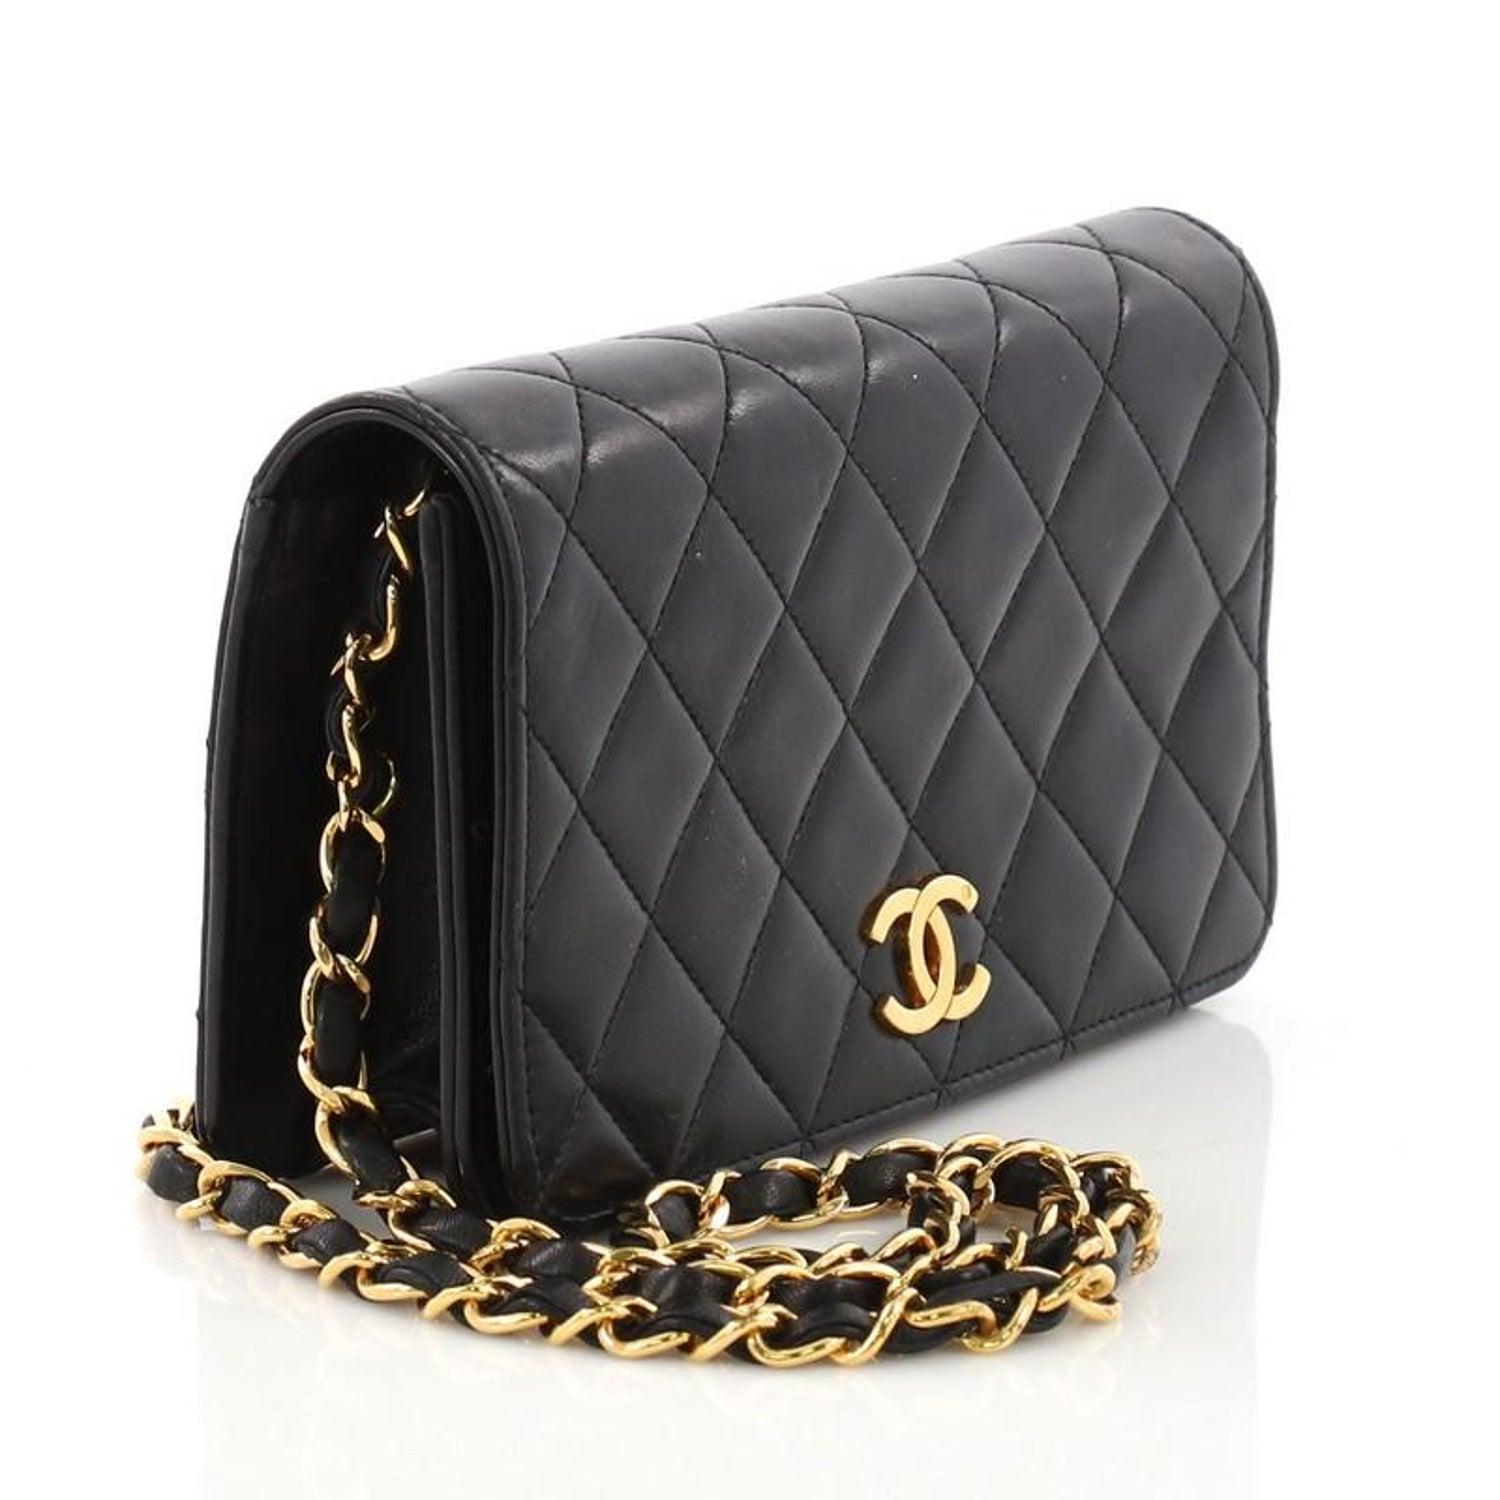 20f51147be4a Chanel Vintage 3 Way Full Flap Bag Quilted Lambskin Mini at 1stdibs